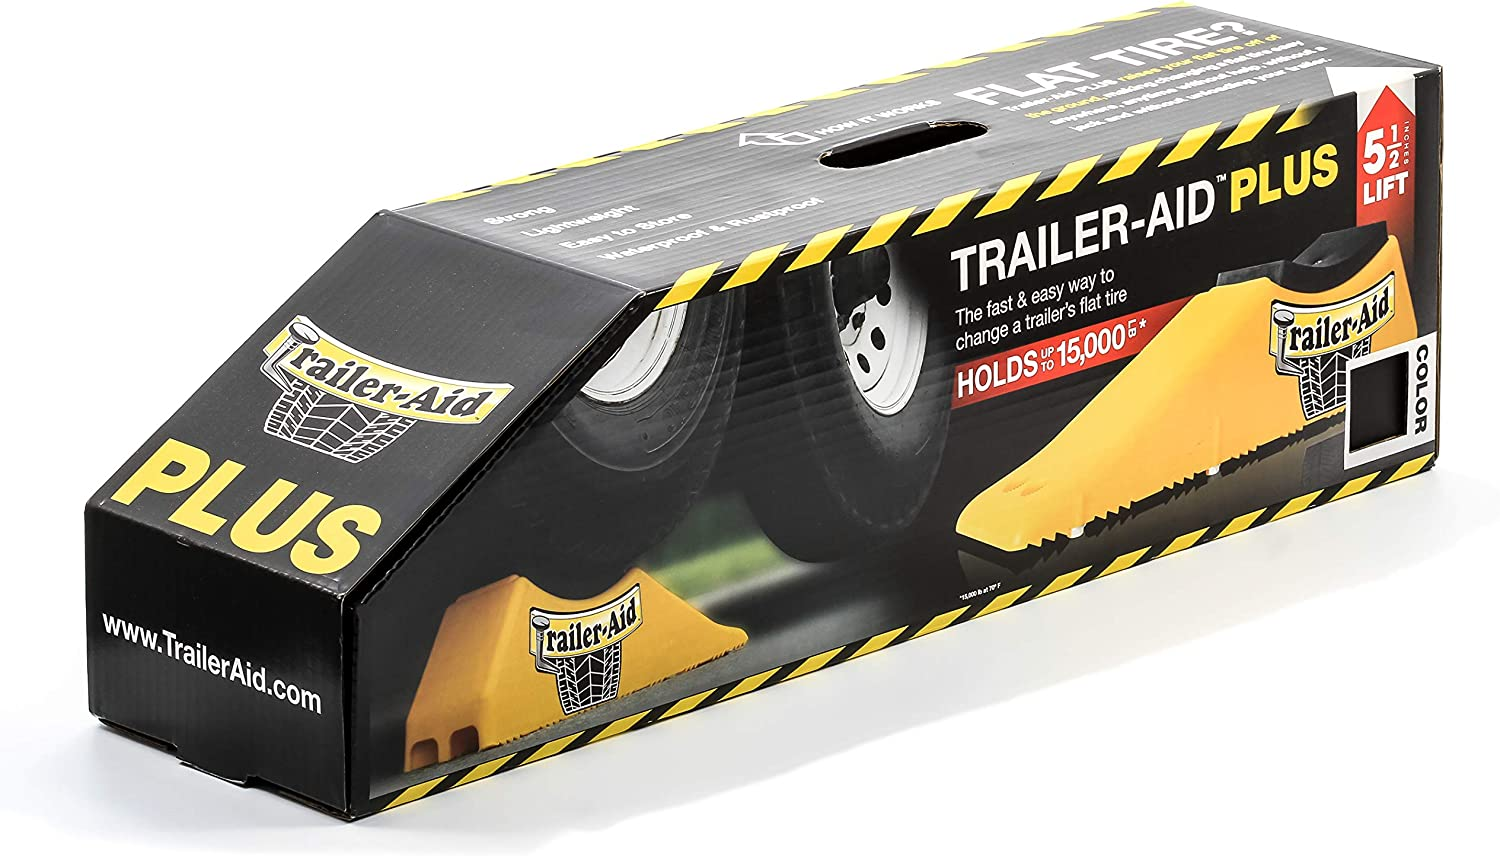 The Fast and Easy Way To Change A Trailers Flat Tire Yellow Trailer-Aid Tandem Tire Changing Ramp 4.5 Inch Lift Holds up to 15,000 lbs